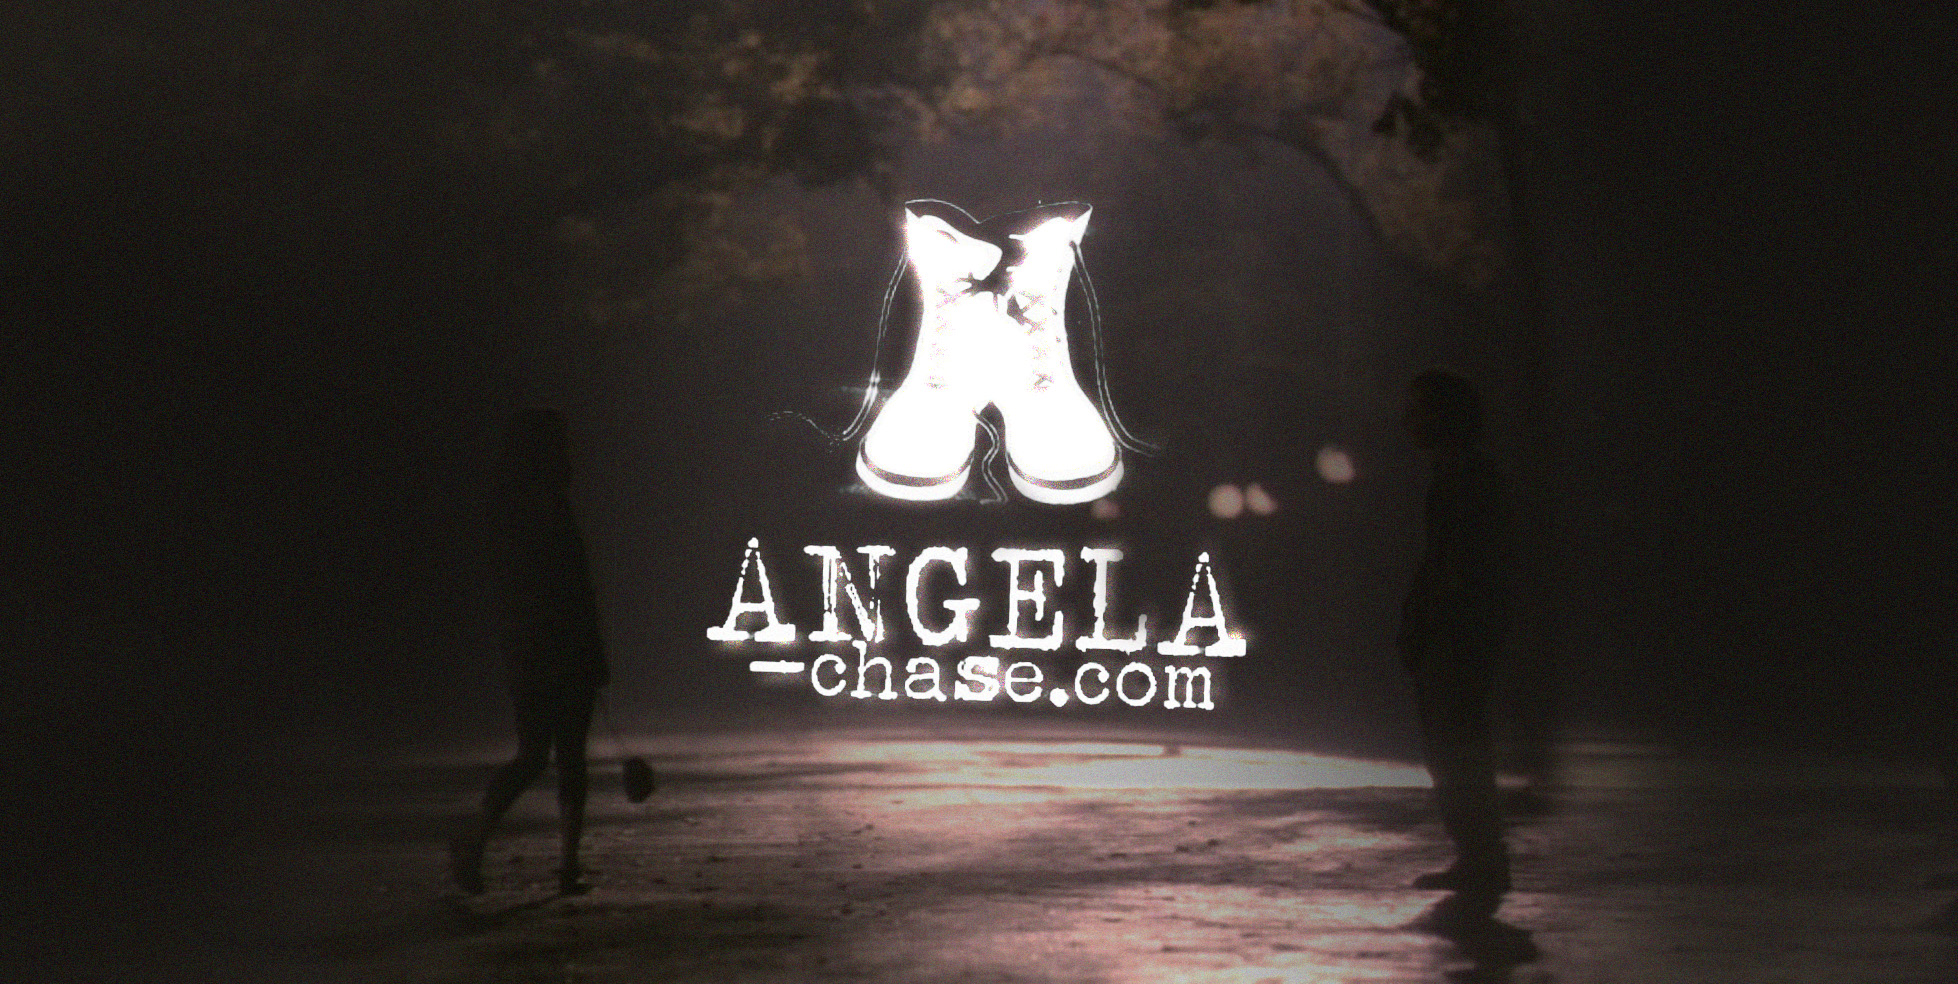 Angela Chase's online diary